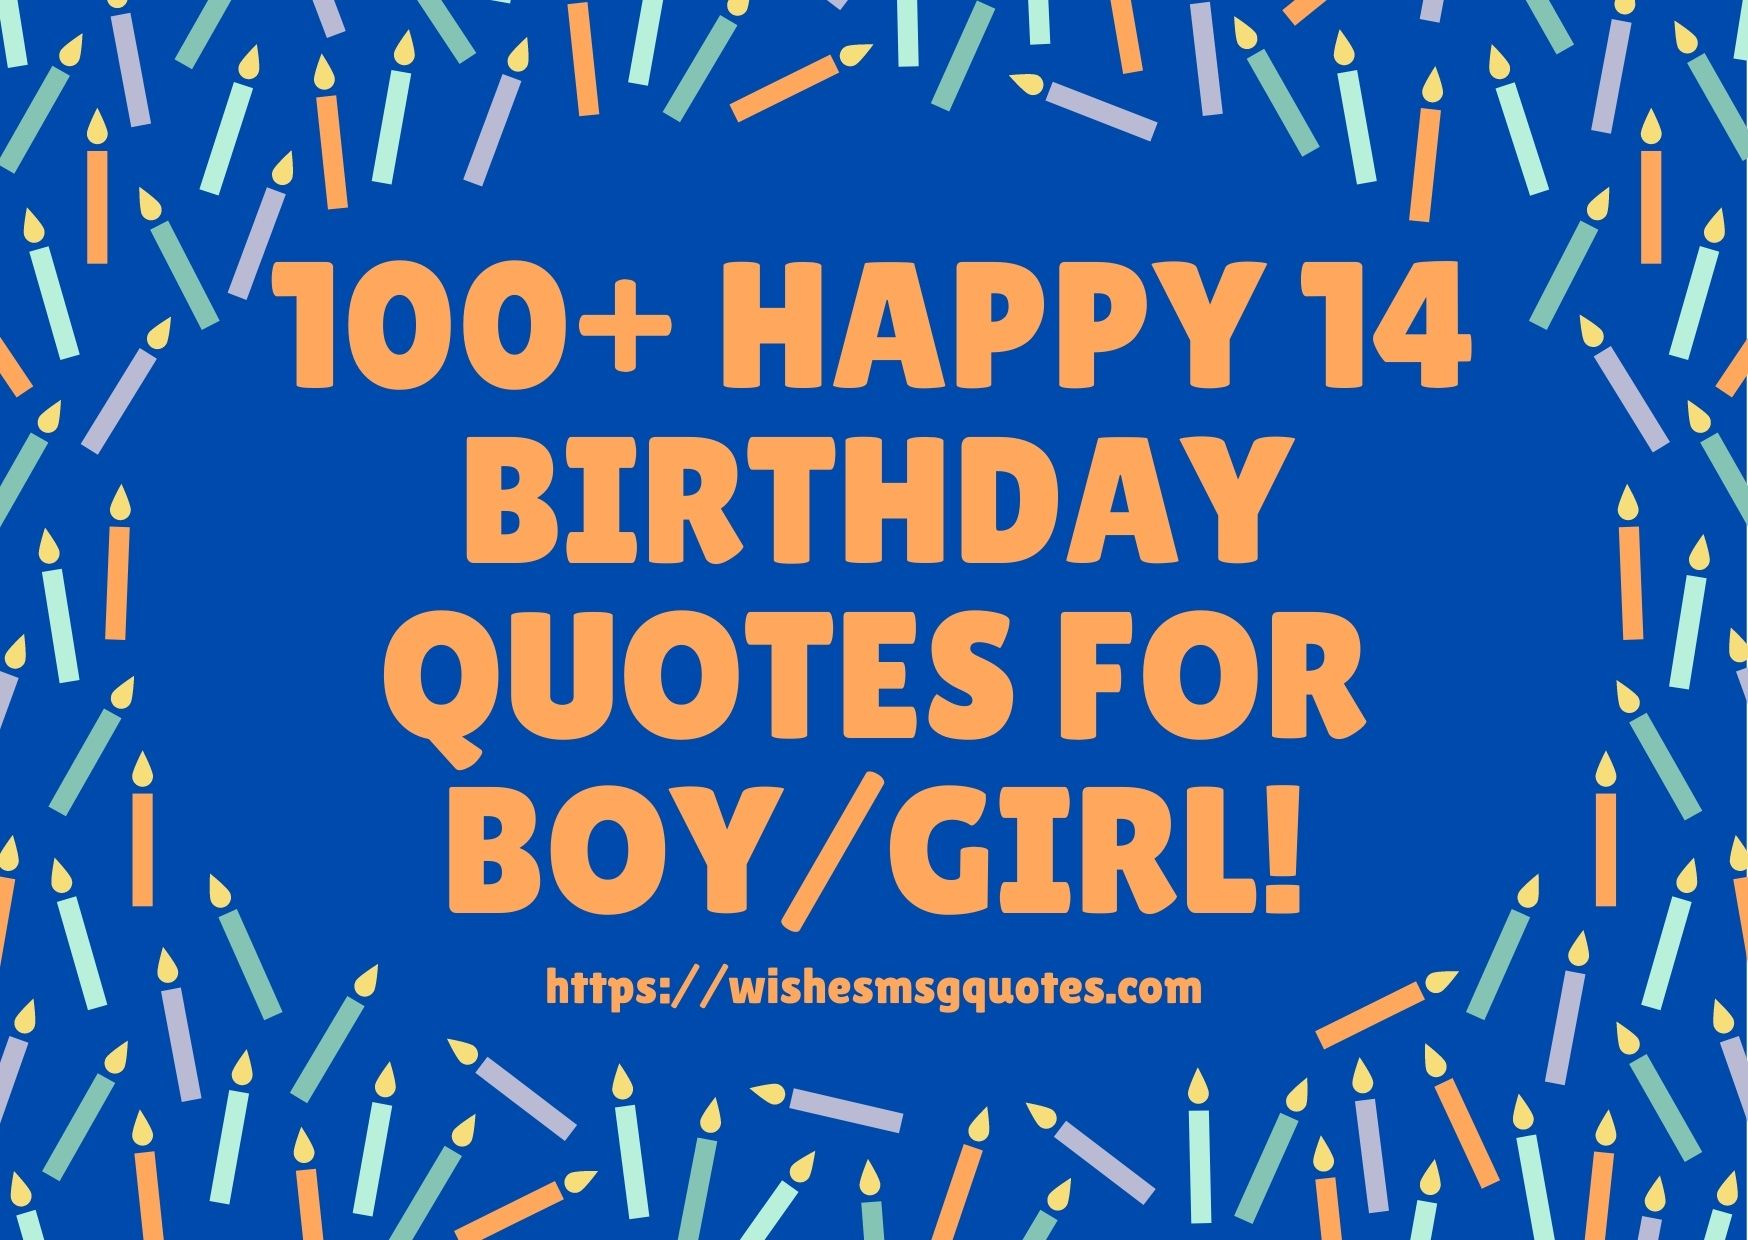 100+ Happy 14th Birthday Quotes For Boy And Girl